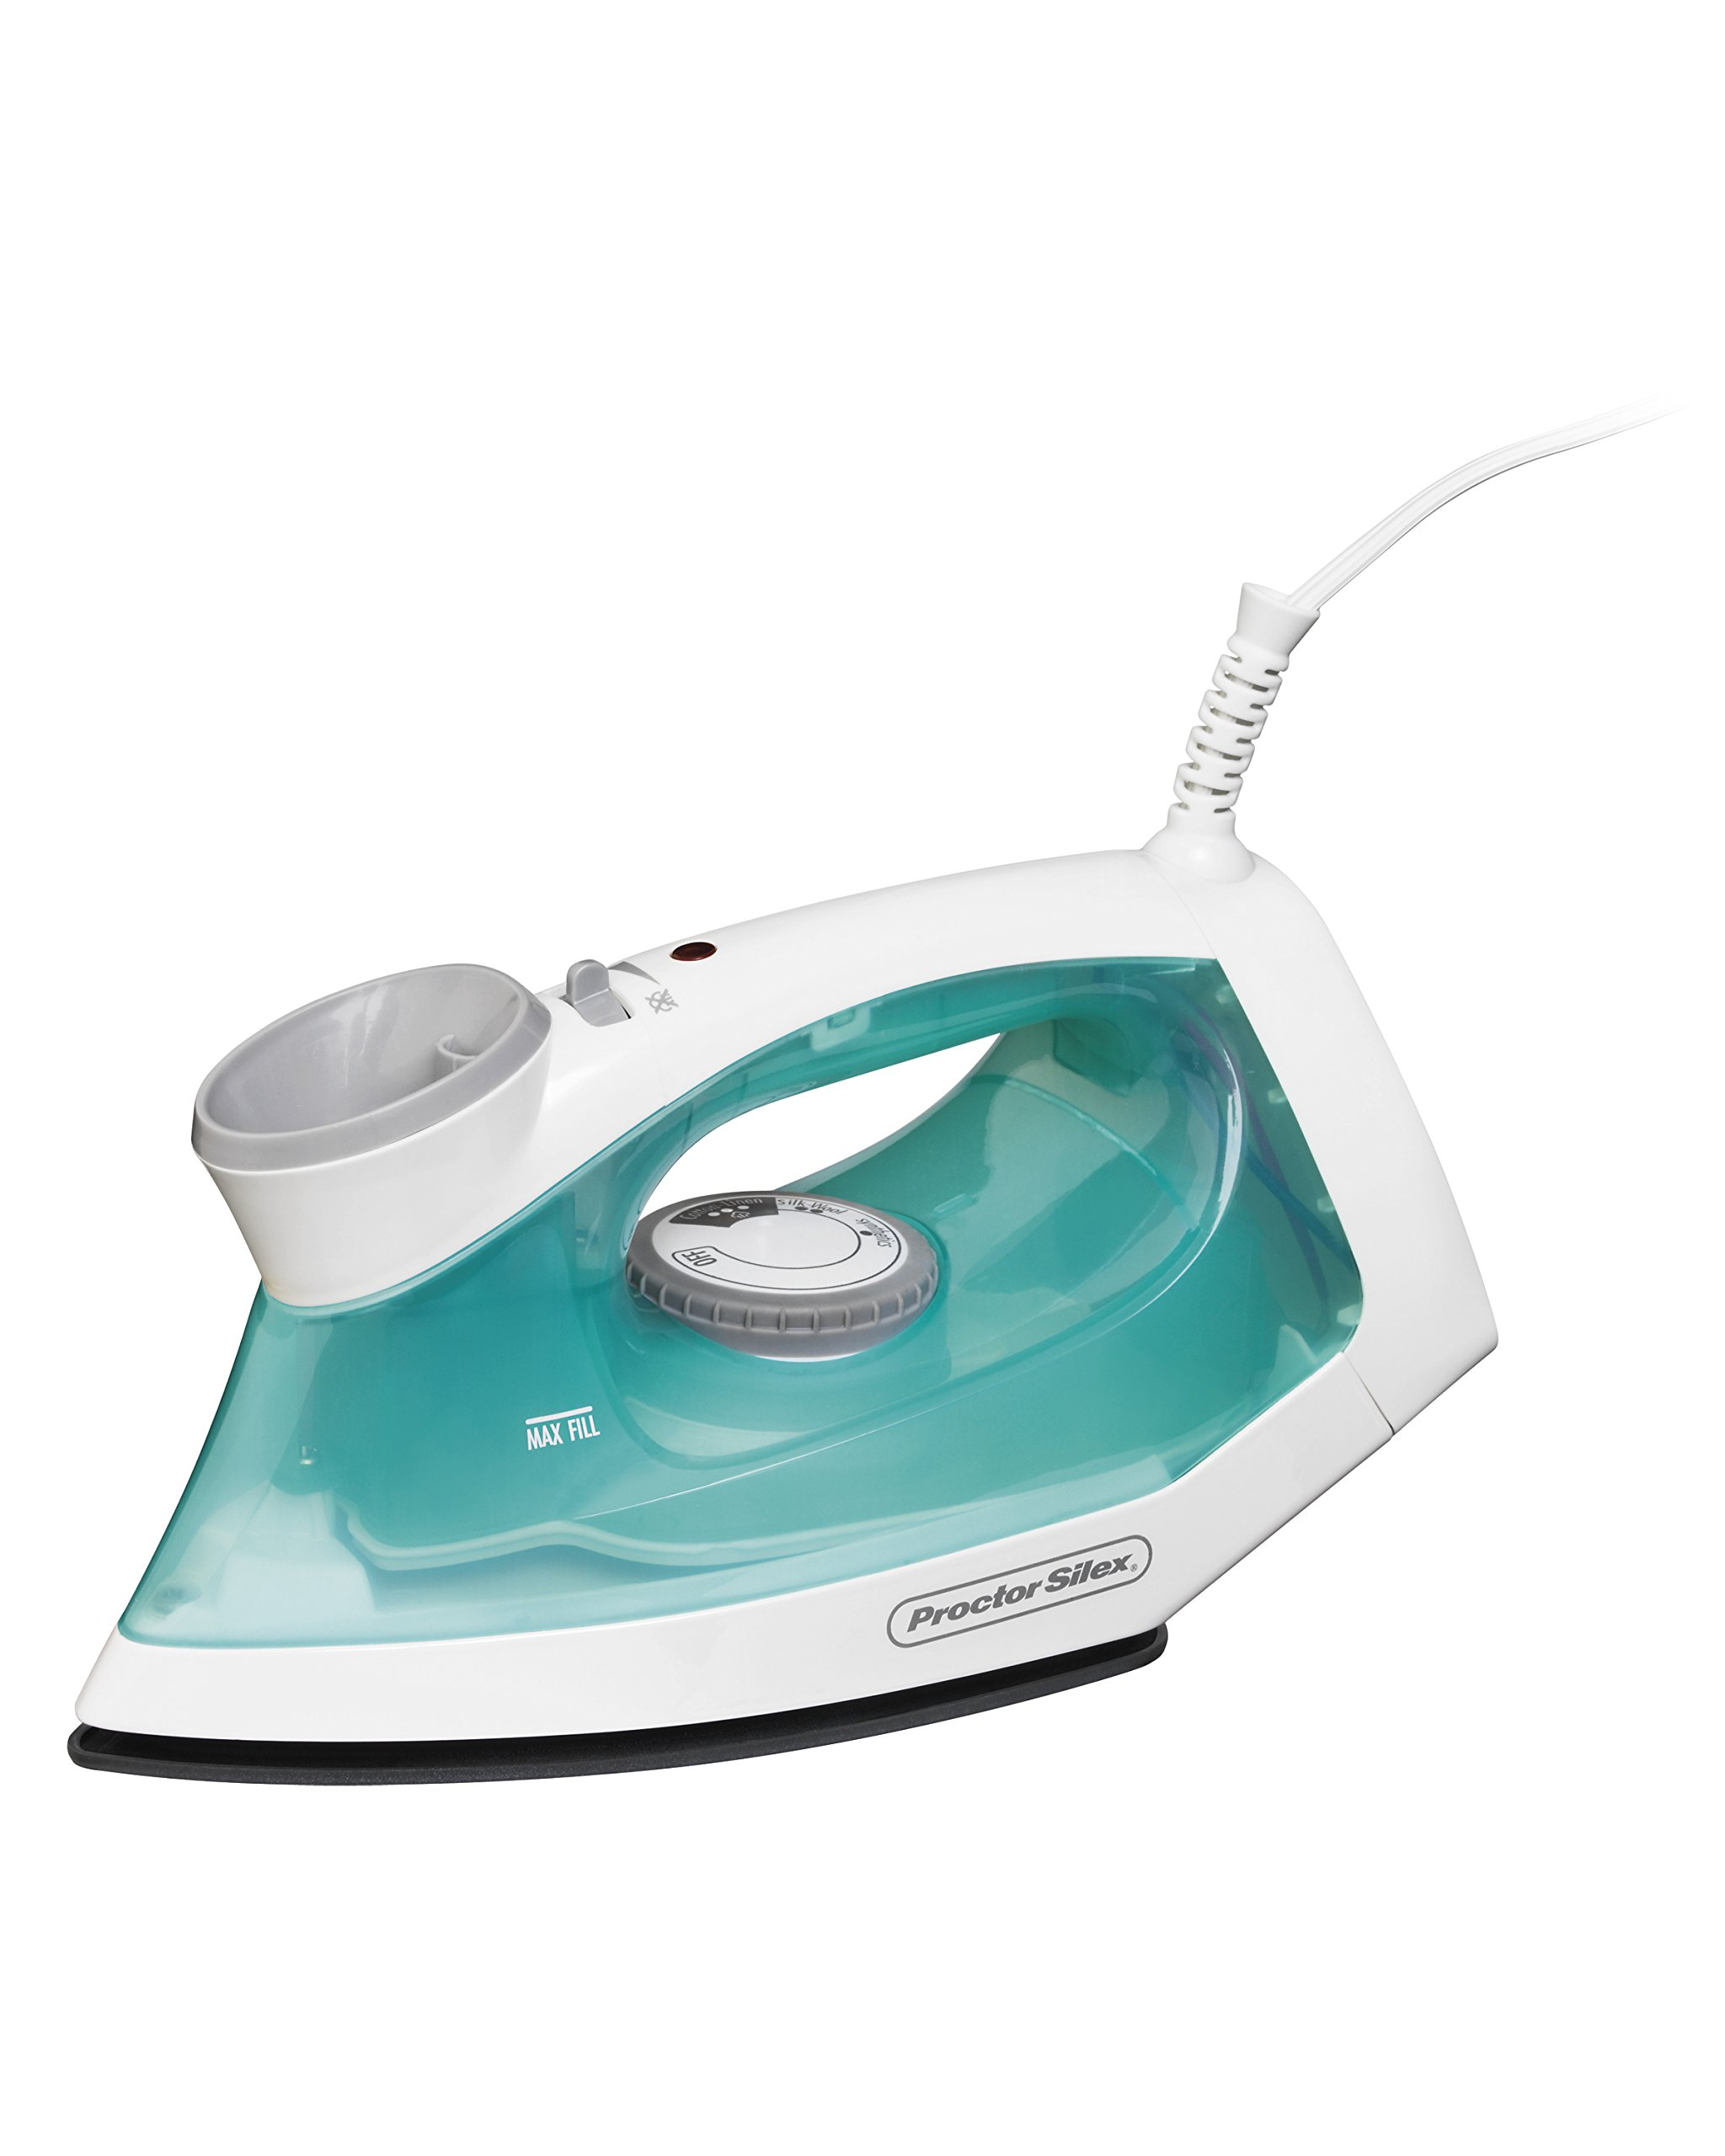 Proctor Silex Steam Iron with Easy Fill Water Reservoir & Nonstick Soleplate (17325)